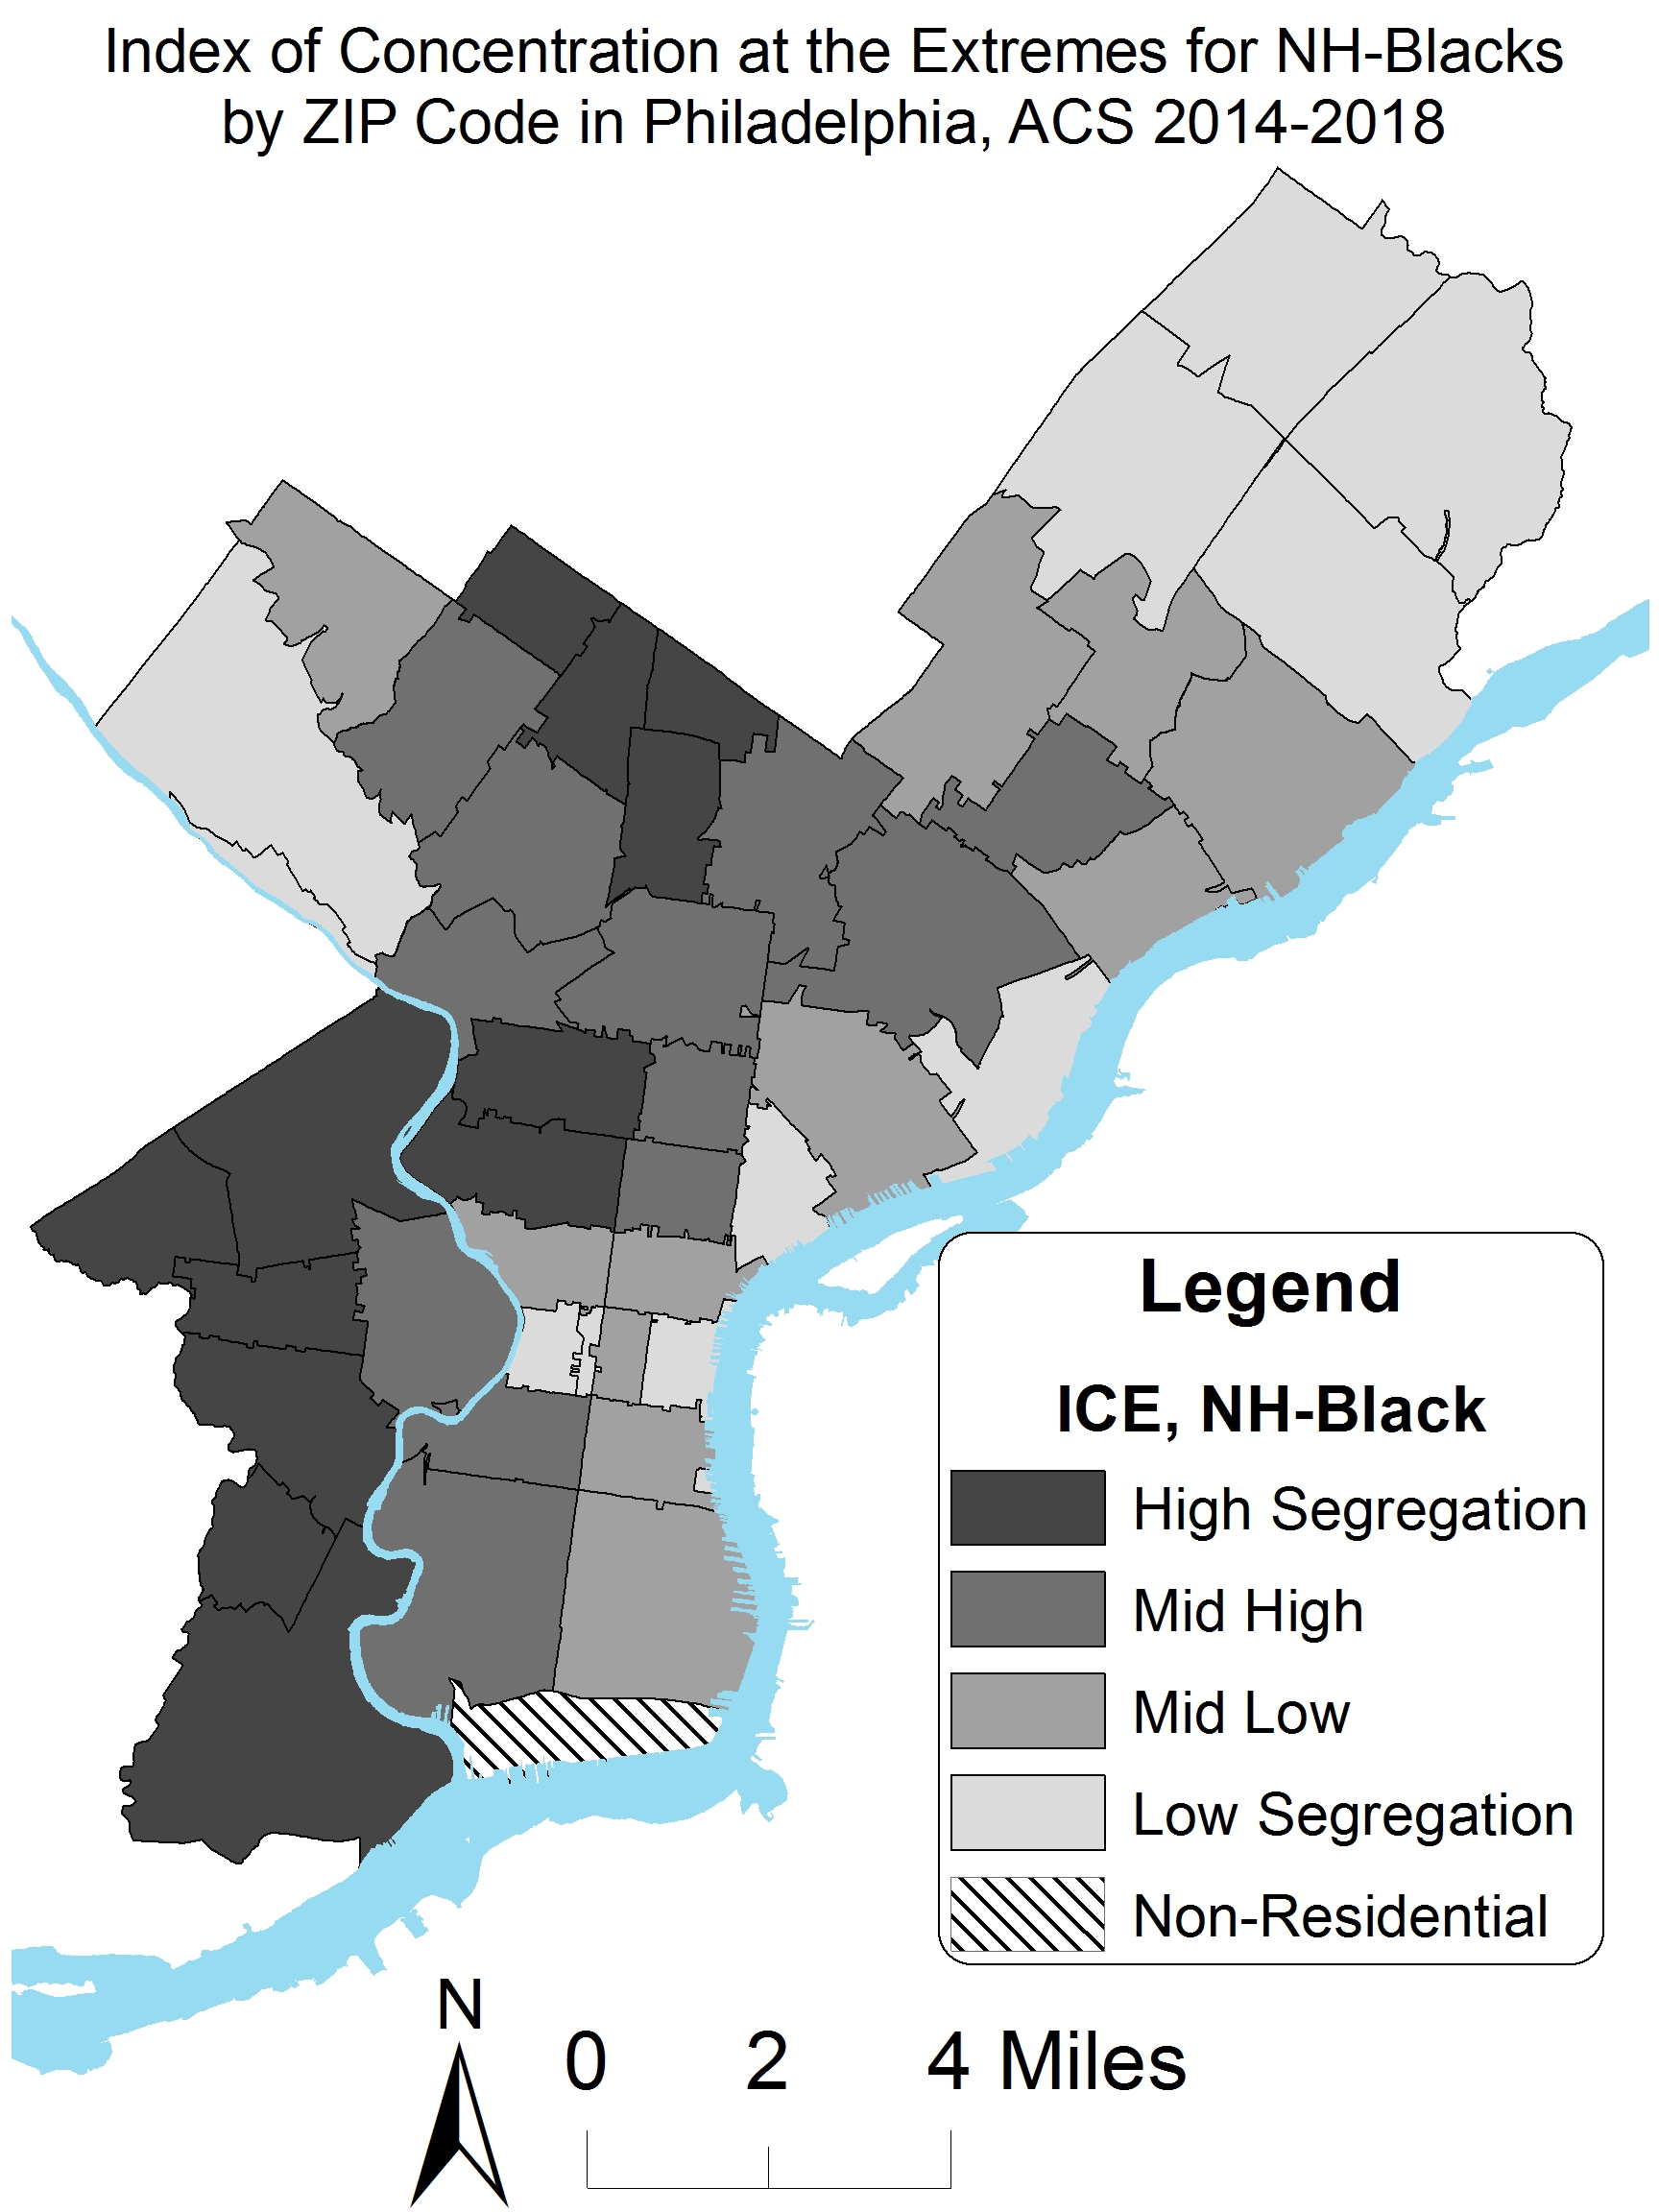 Racial Residential Segregation in Philadelphia